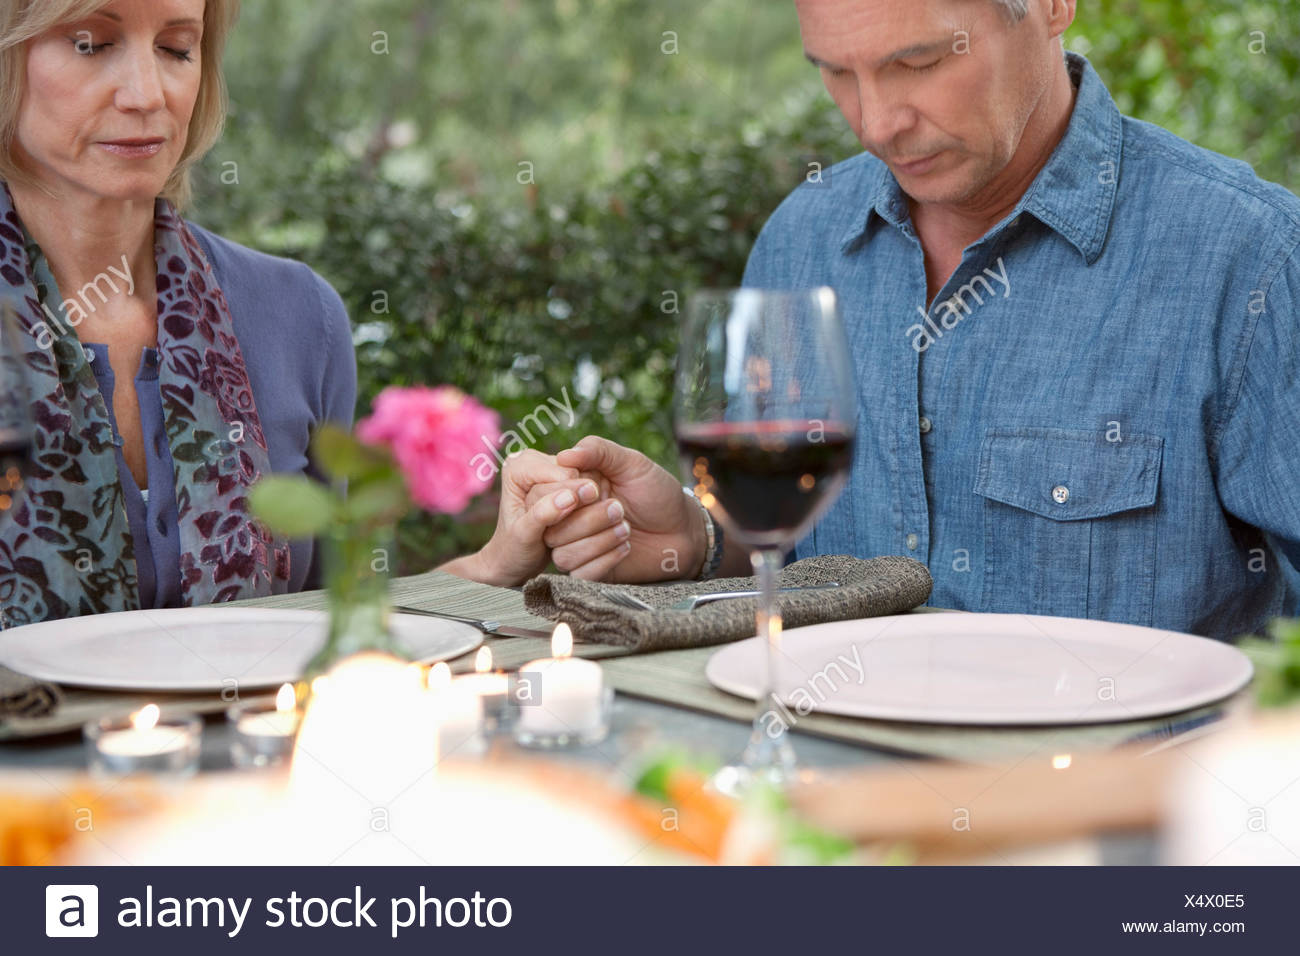 Vieux couple priant at dinner table Photo Stock